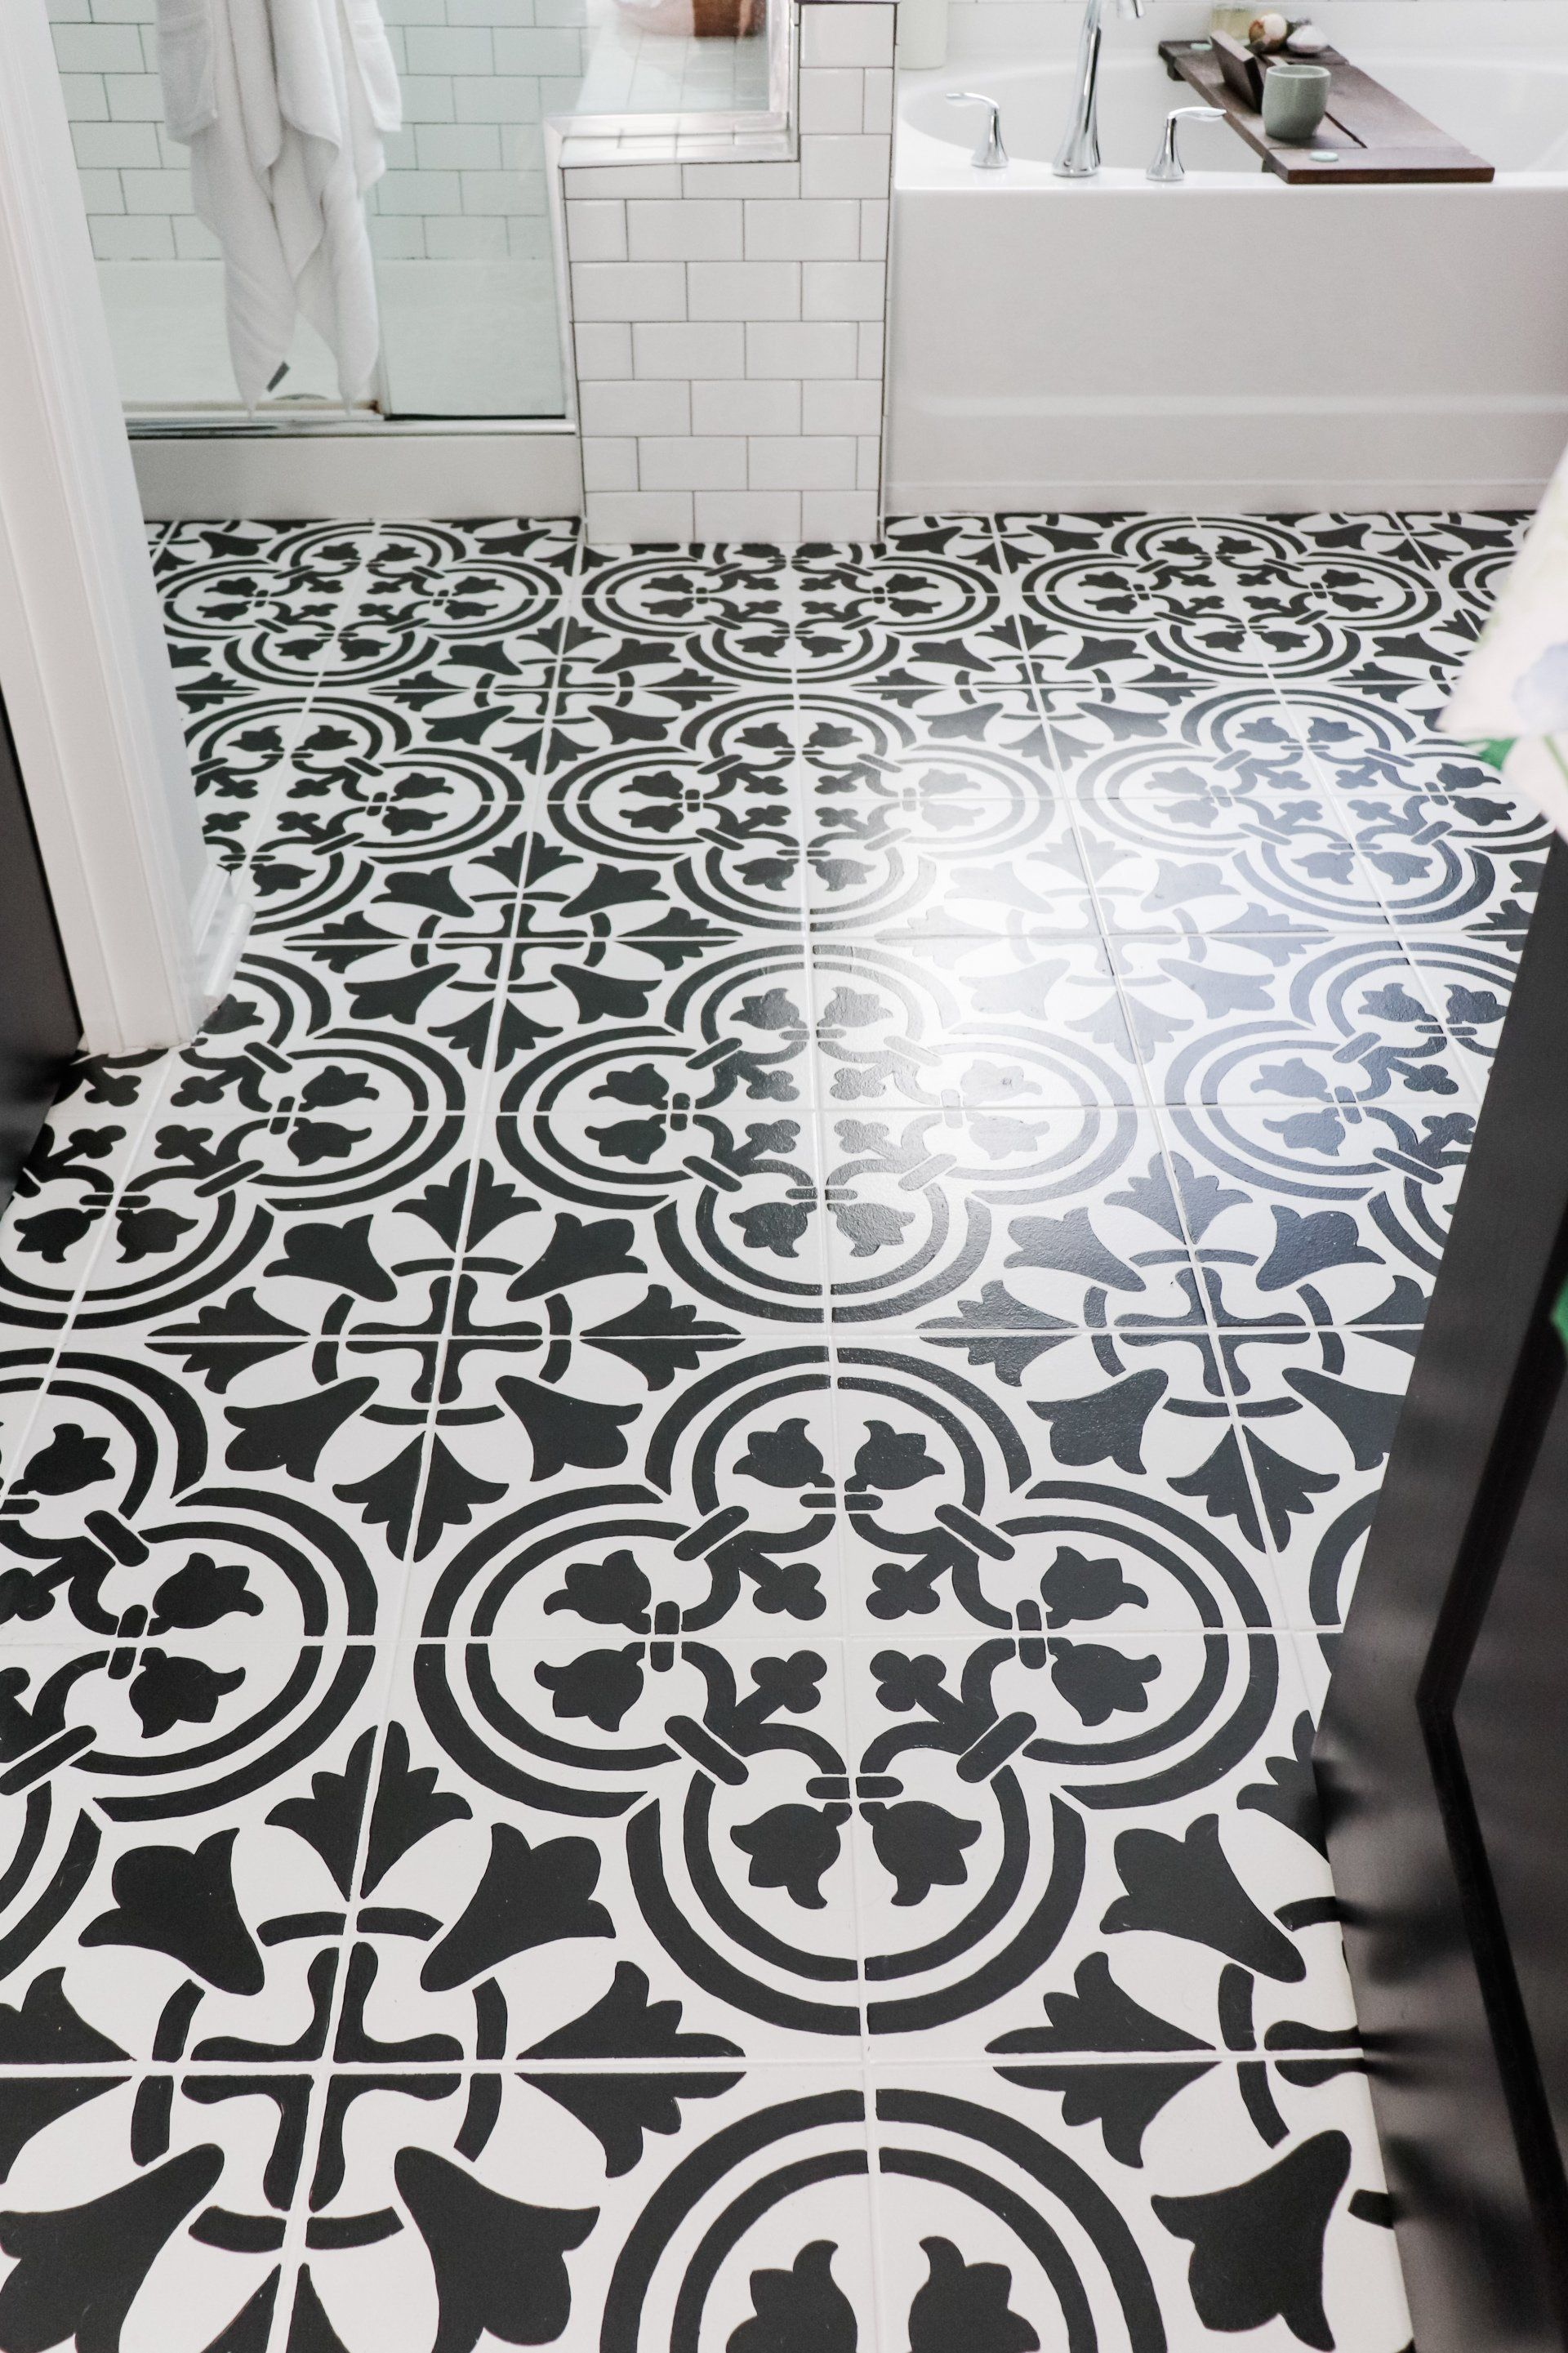 Wondering About Painted Tile Durability Do You Want To Know How Well Painted Tiles Hold Up We Put Our Diy Painted Ti Painting Tile Painting Tile Floors Tiles